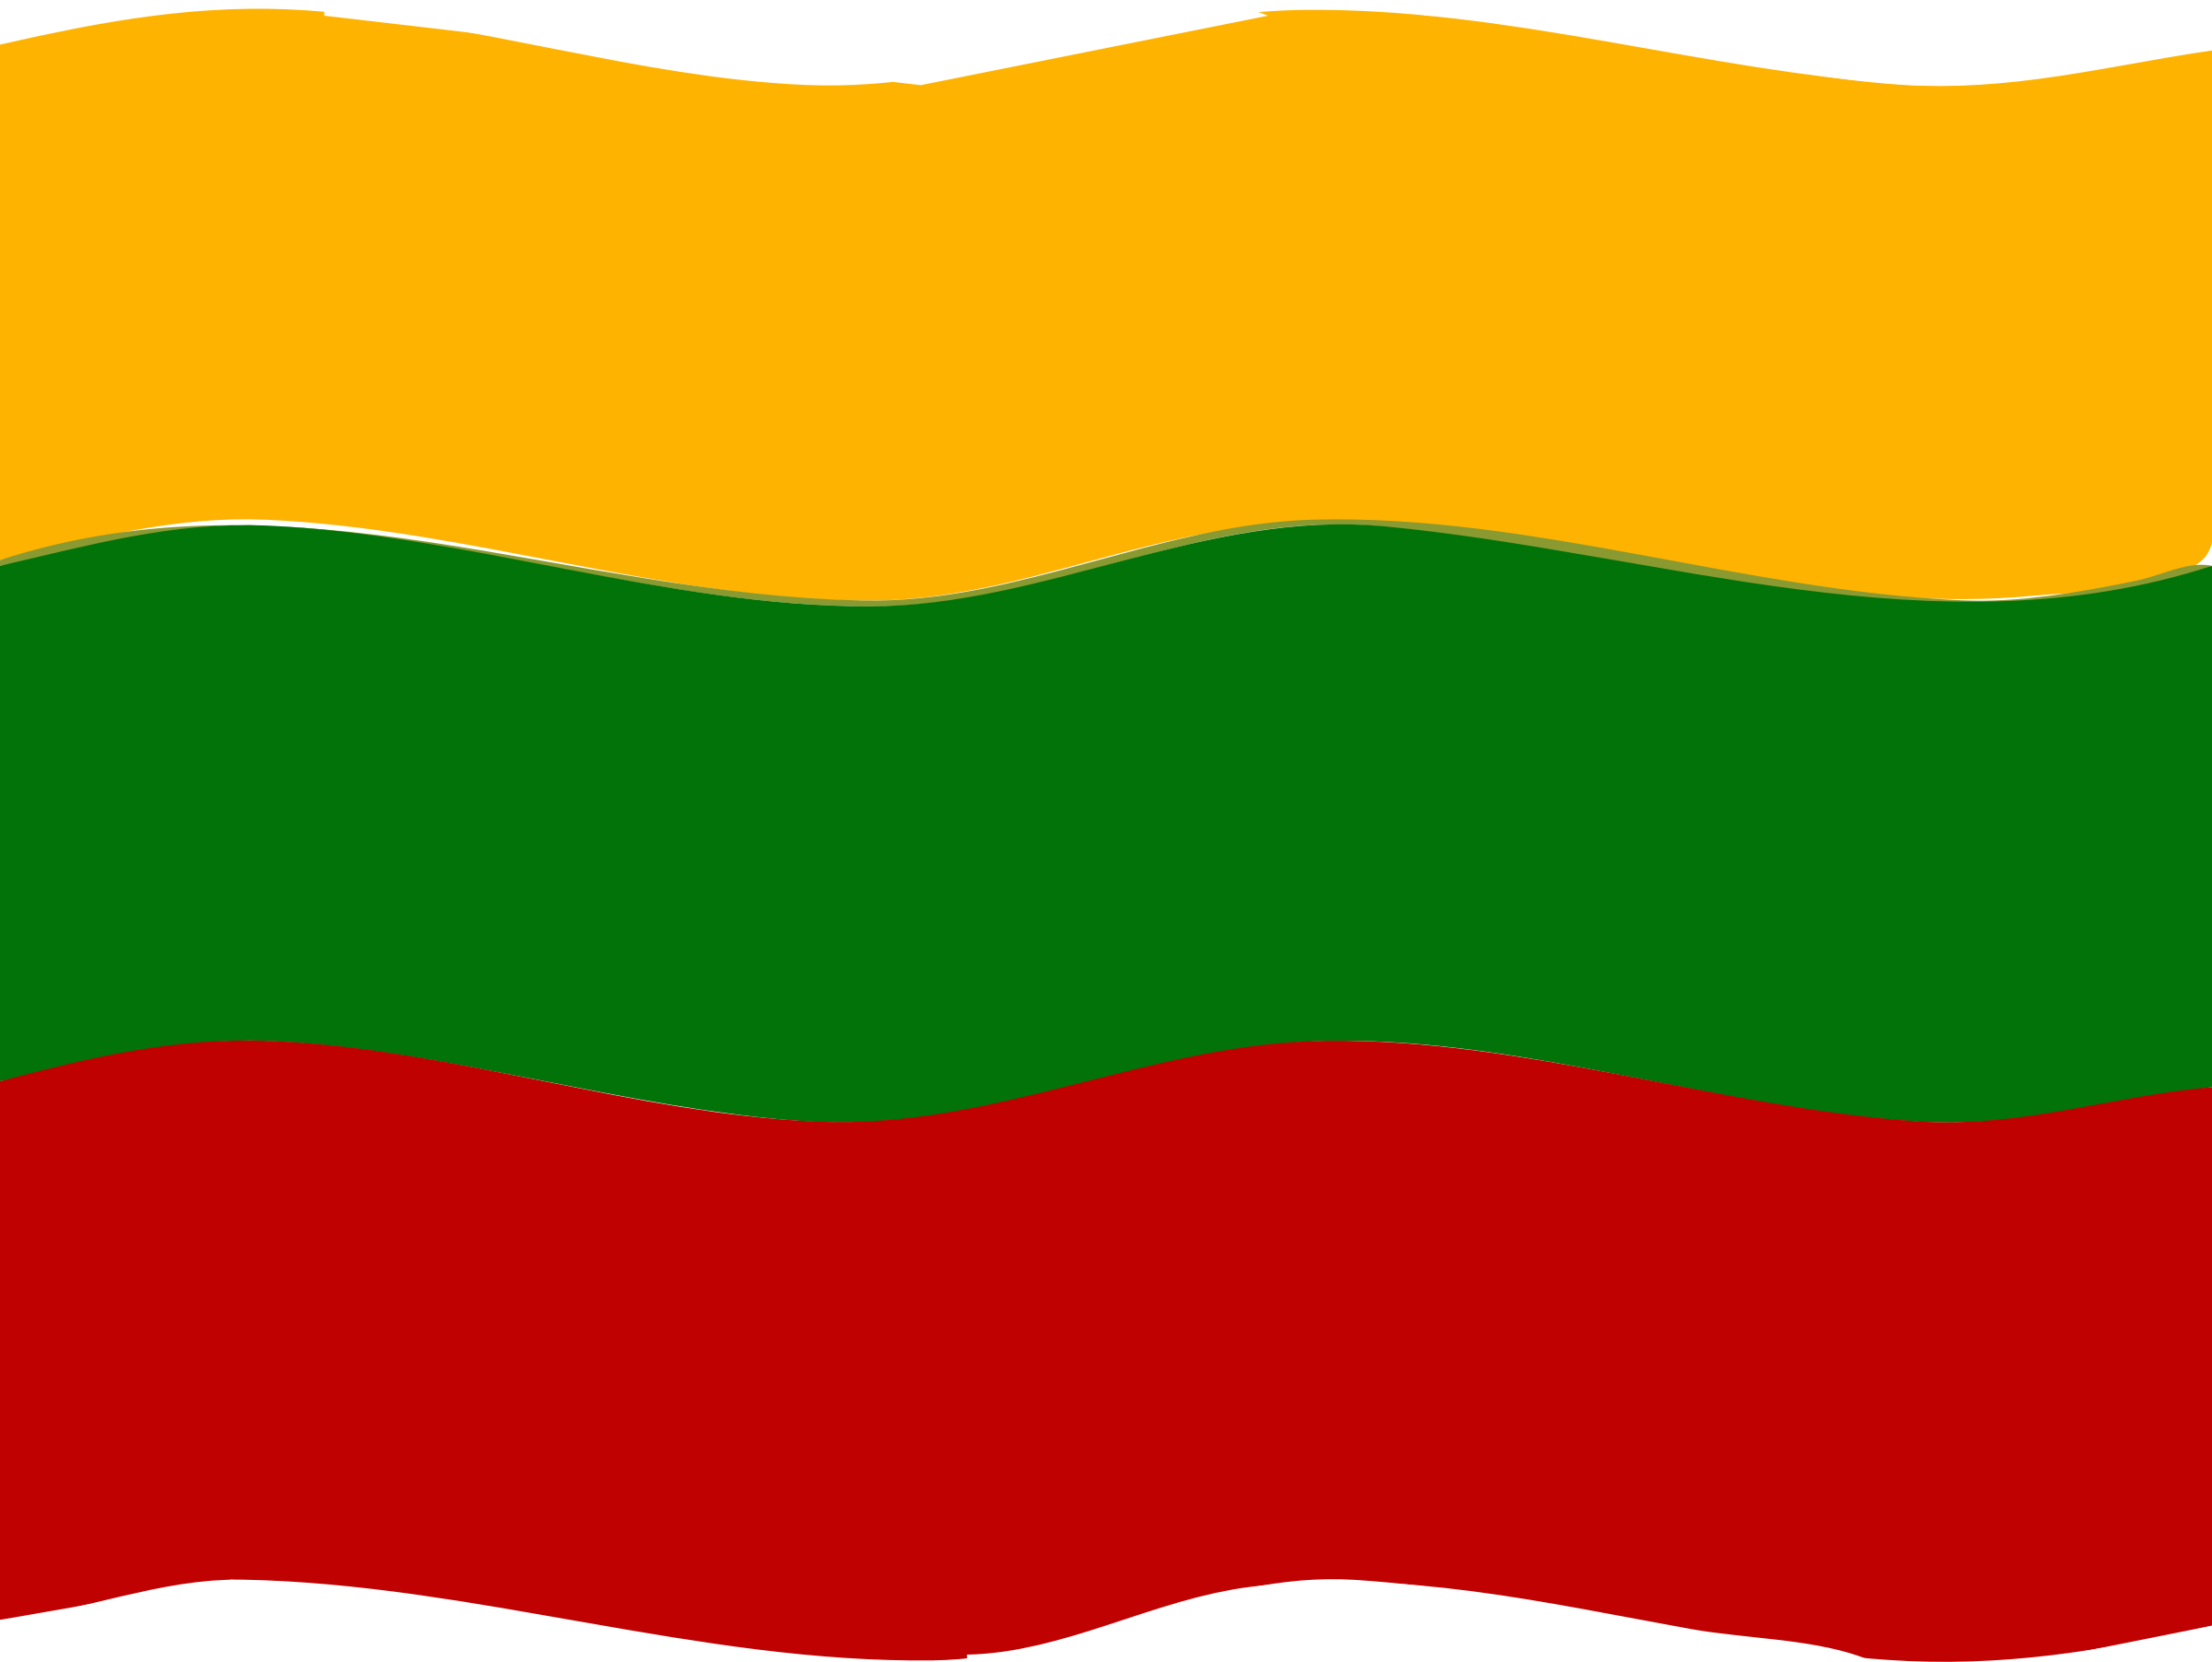 Flag of Lithuania wave by Joesph